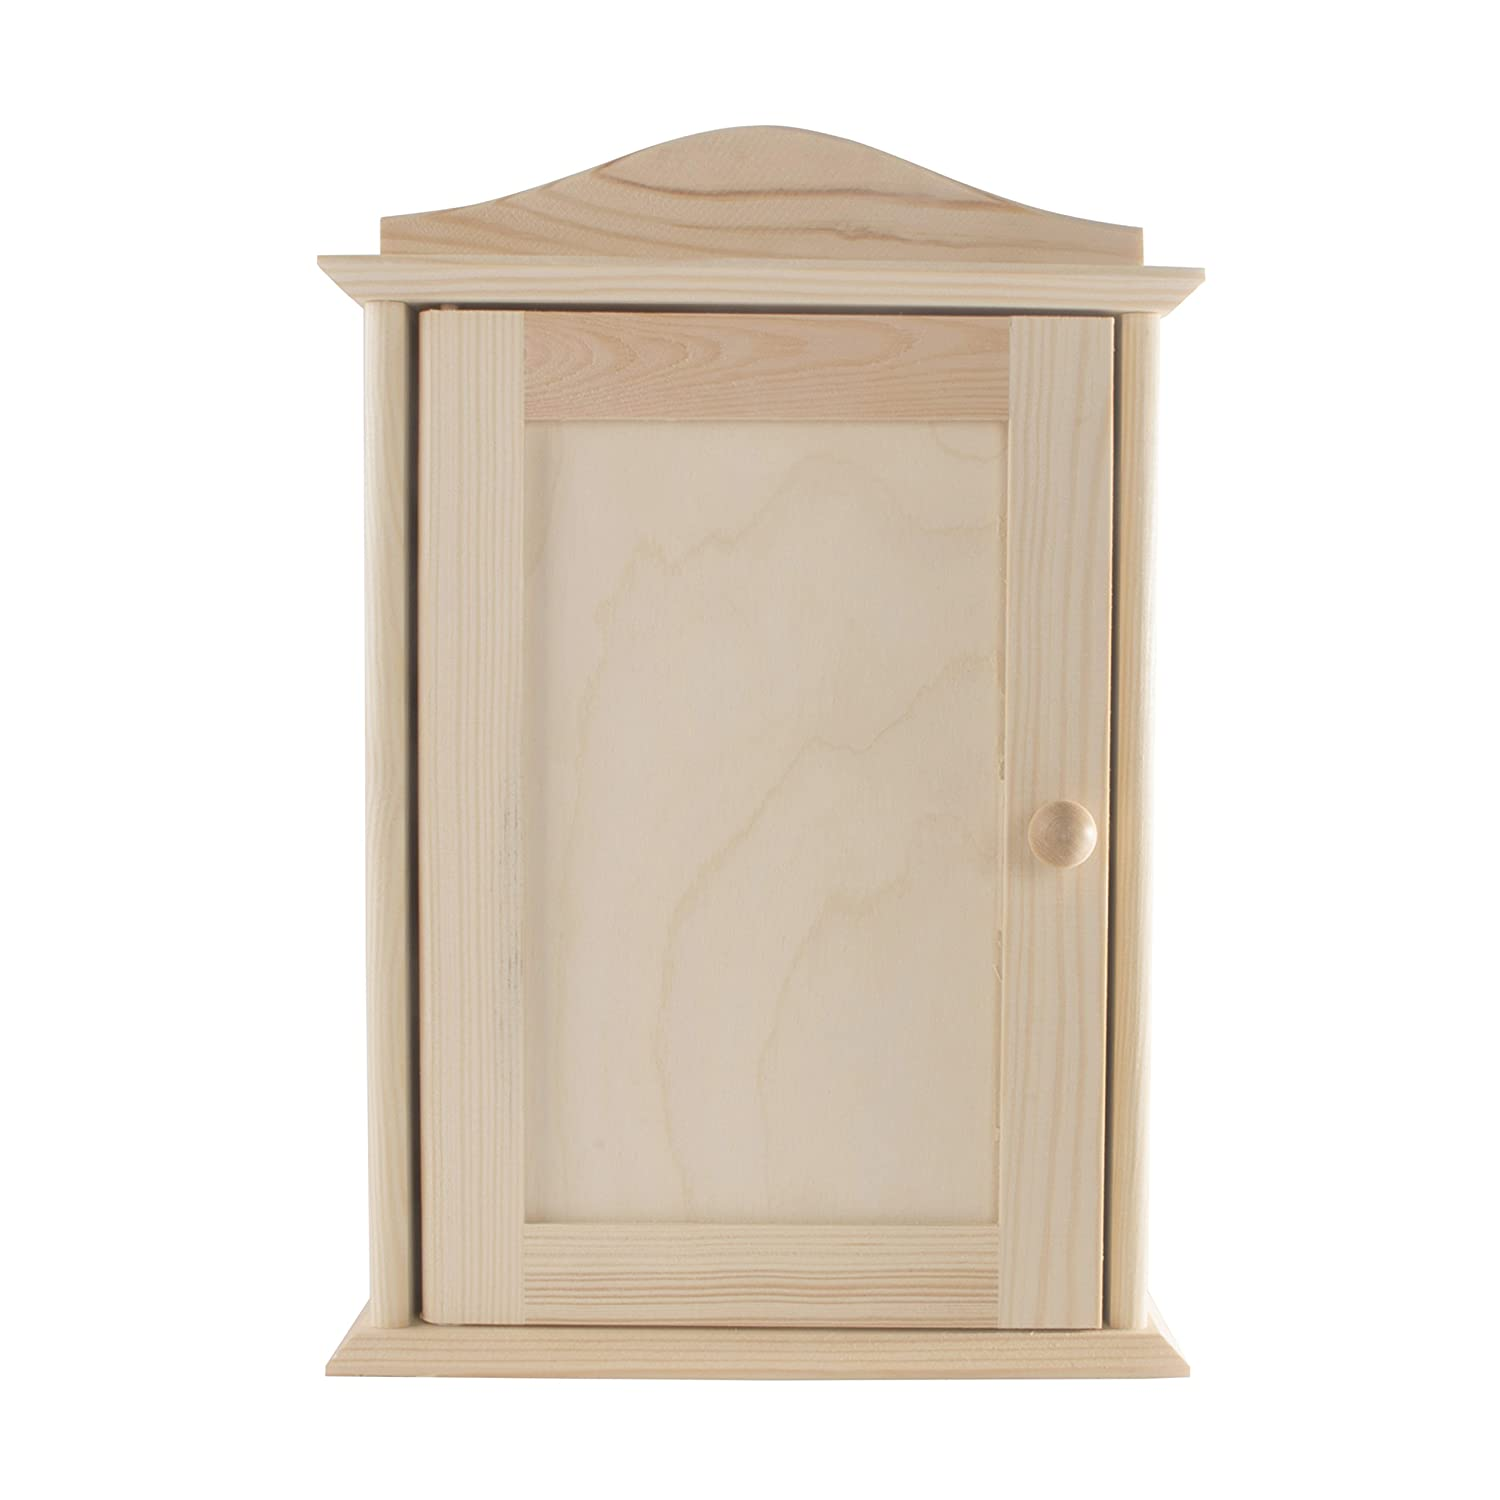 Wooden Key Box Rack Cabinet Holder/Wall Mounted/Paint Customise DIY / 6 Hooks / 20x6x29.5 cm SEARCH BOX